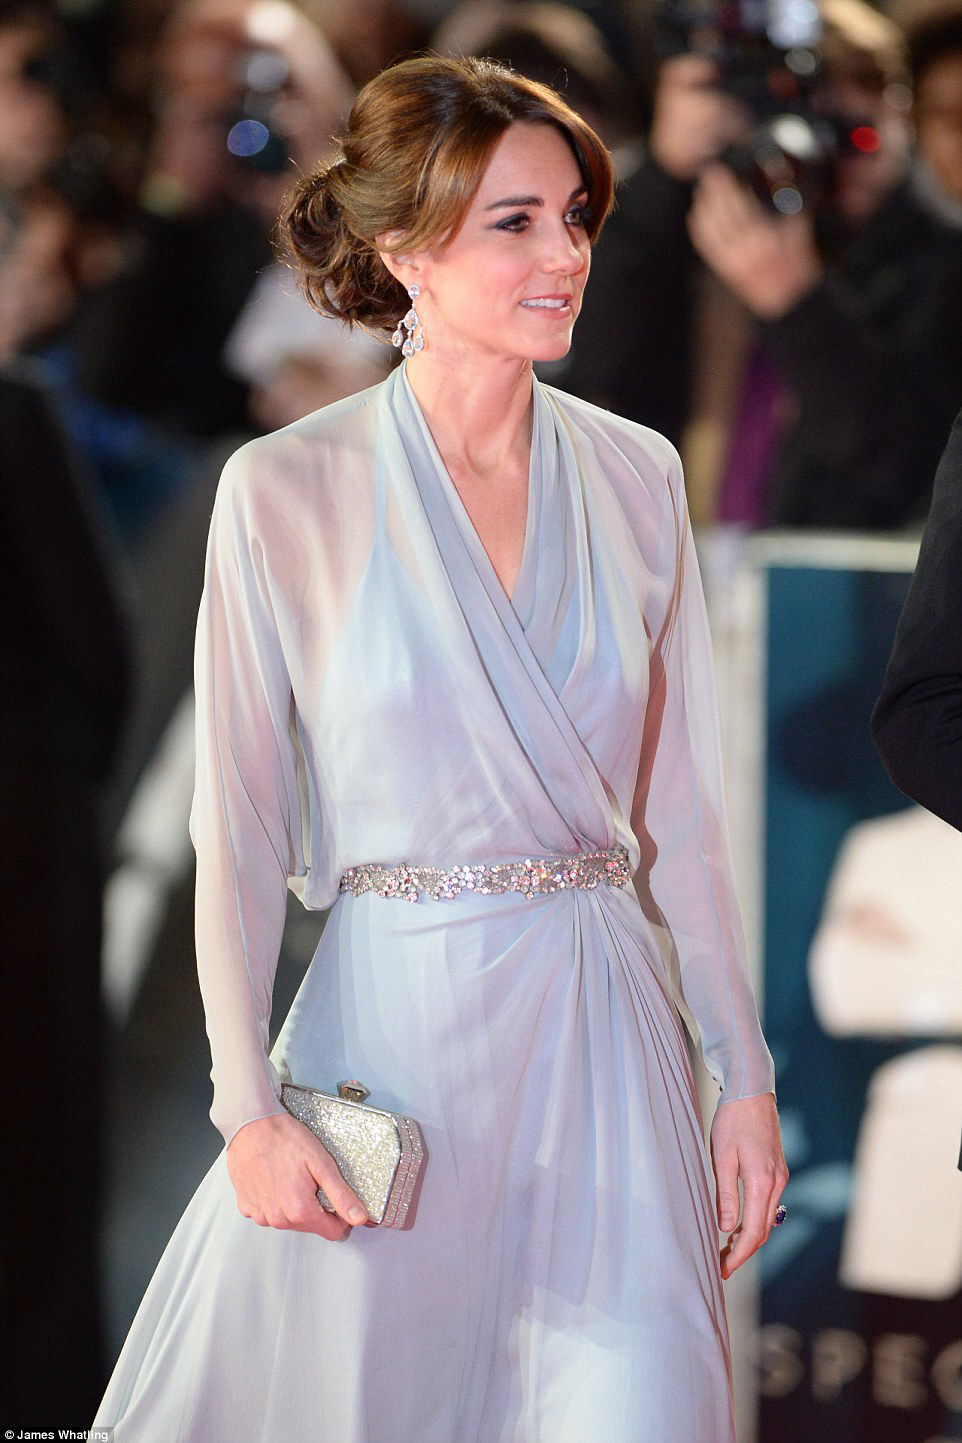 01 Duchess of Cambridge goes in pale blue floor-length Jenny Packham gown and diamond accessories at the world premiere of Spectre